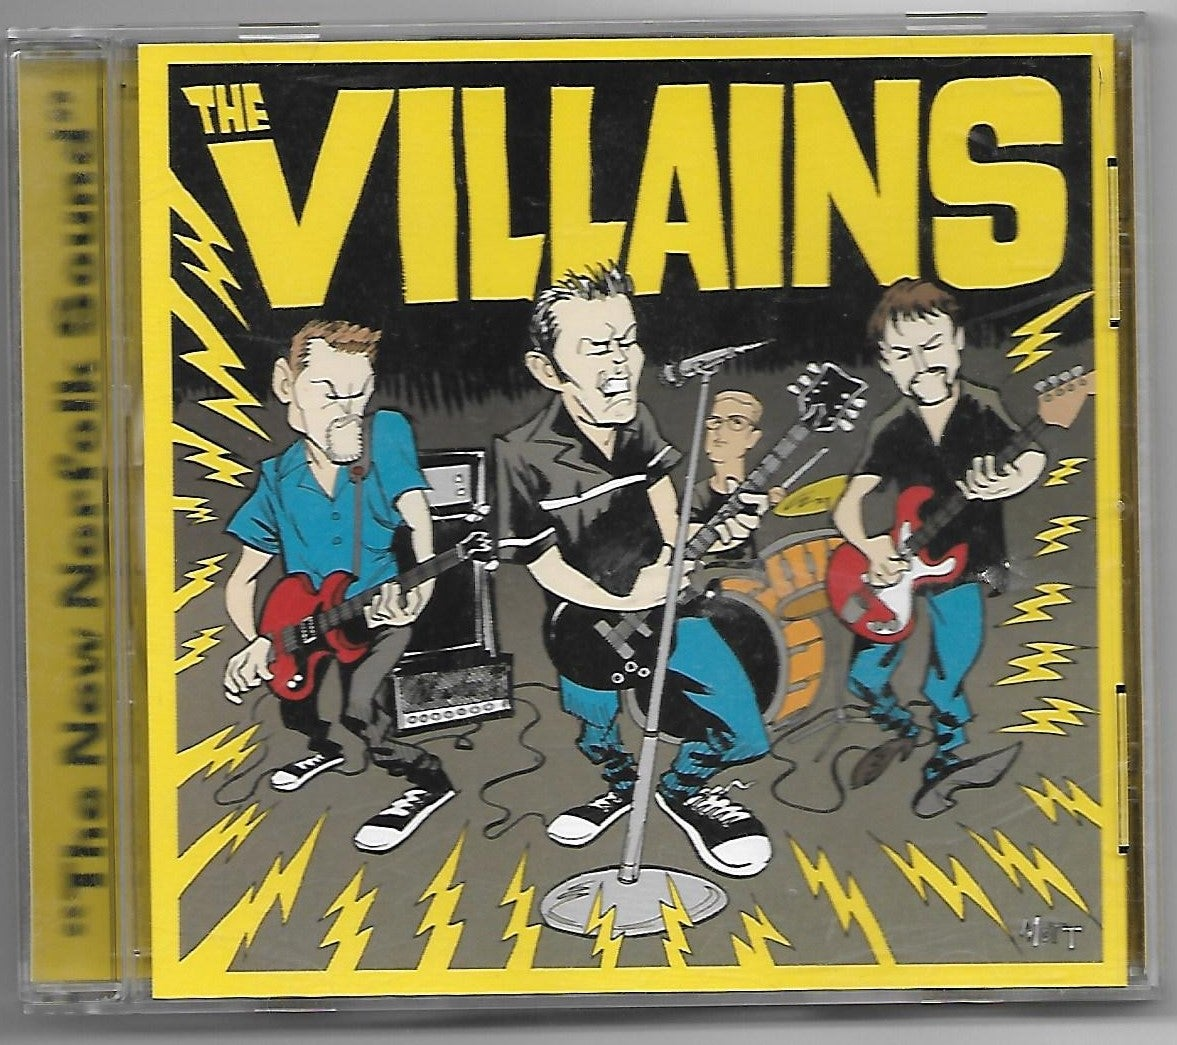 Image of The Villains